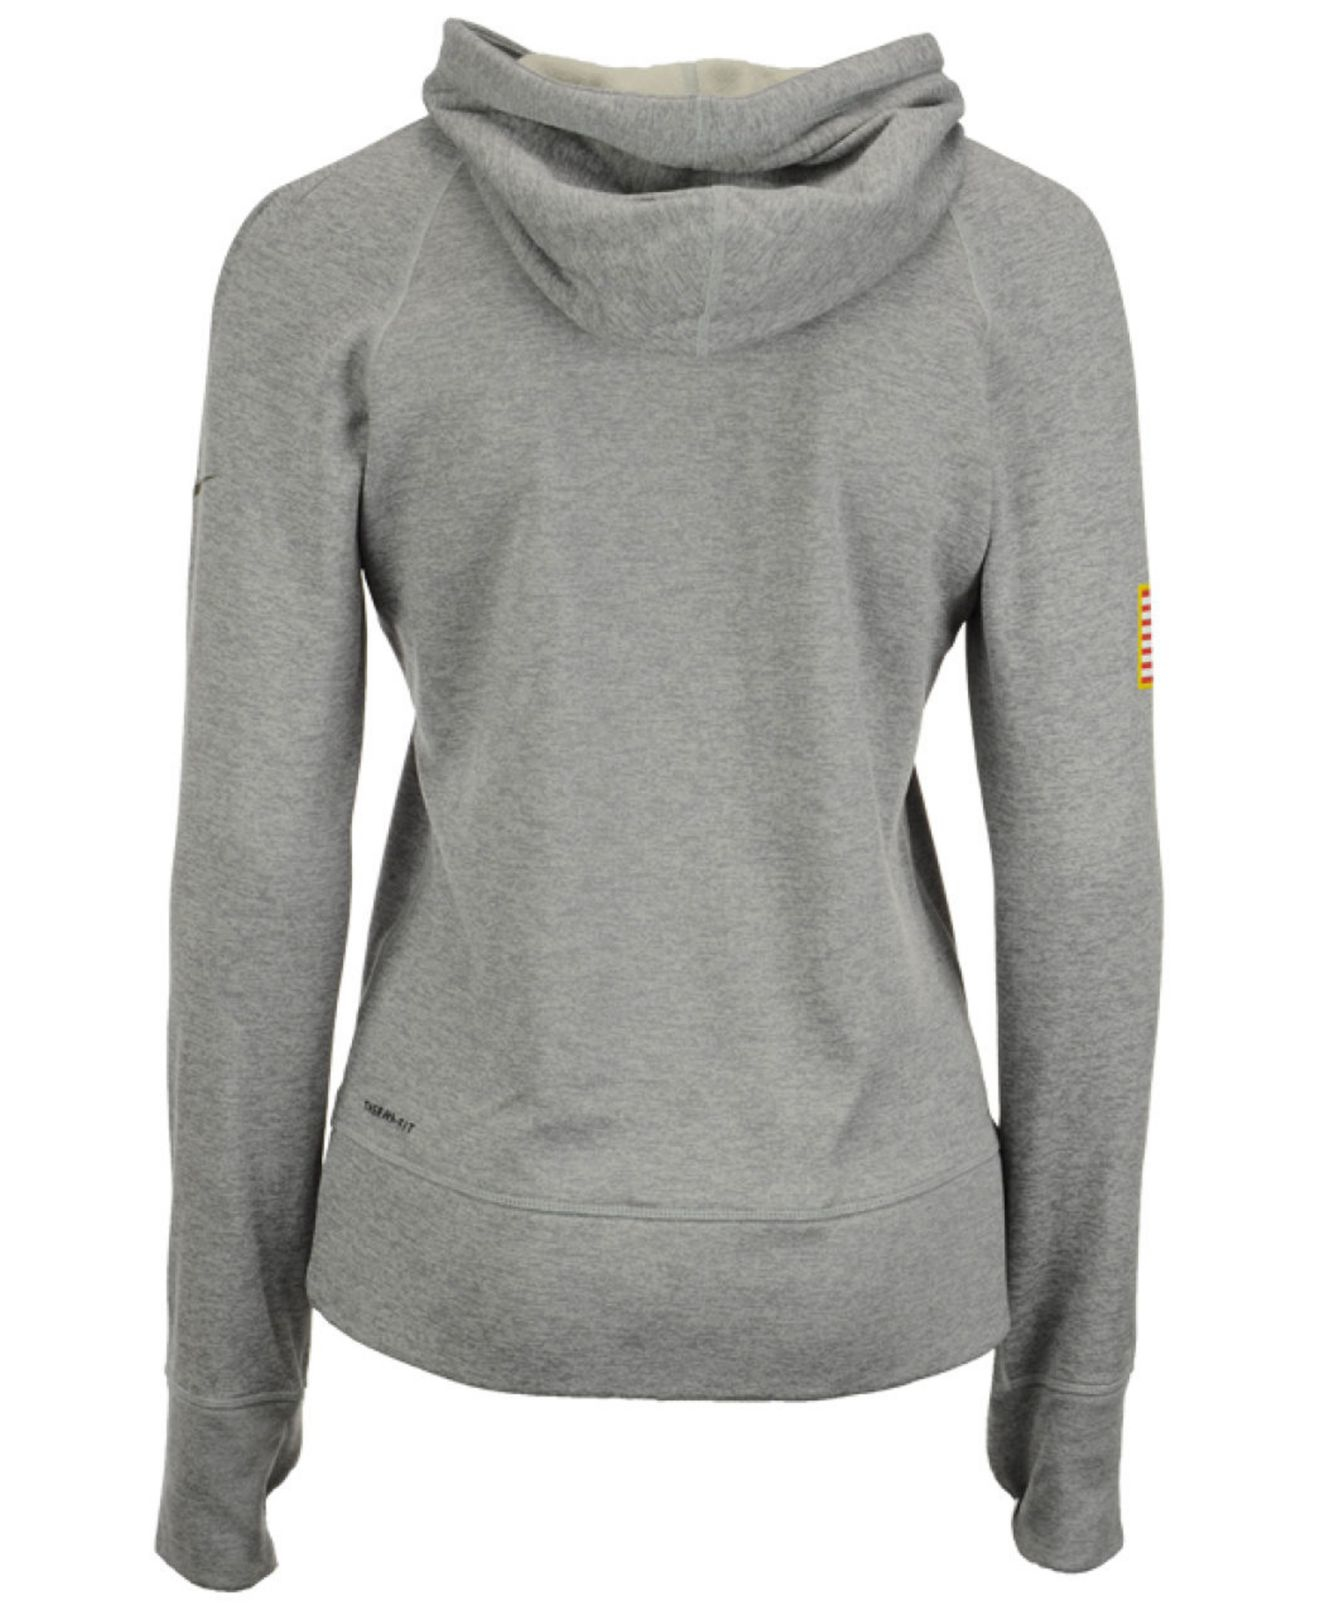 Lyst - Nike Women s Green Bay Packers Salute To Service Hoodie in Gray 78d532b2c